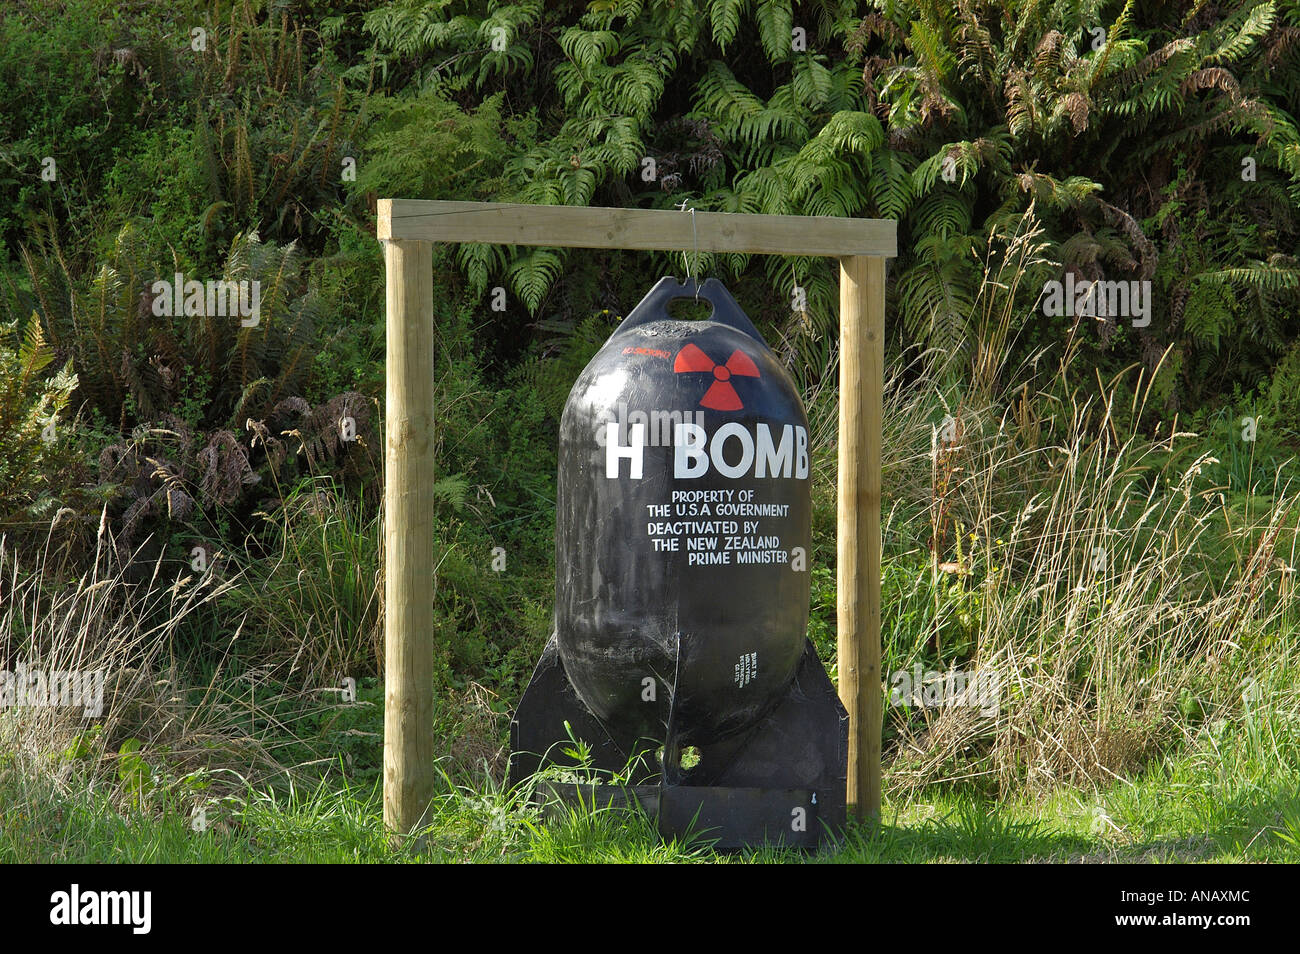 Bomb dummy which points out that NZ is an tomic free area, Gunns Camp, Holyford valley, South Island, New Zealand - Stock Image